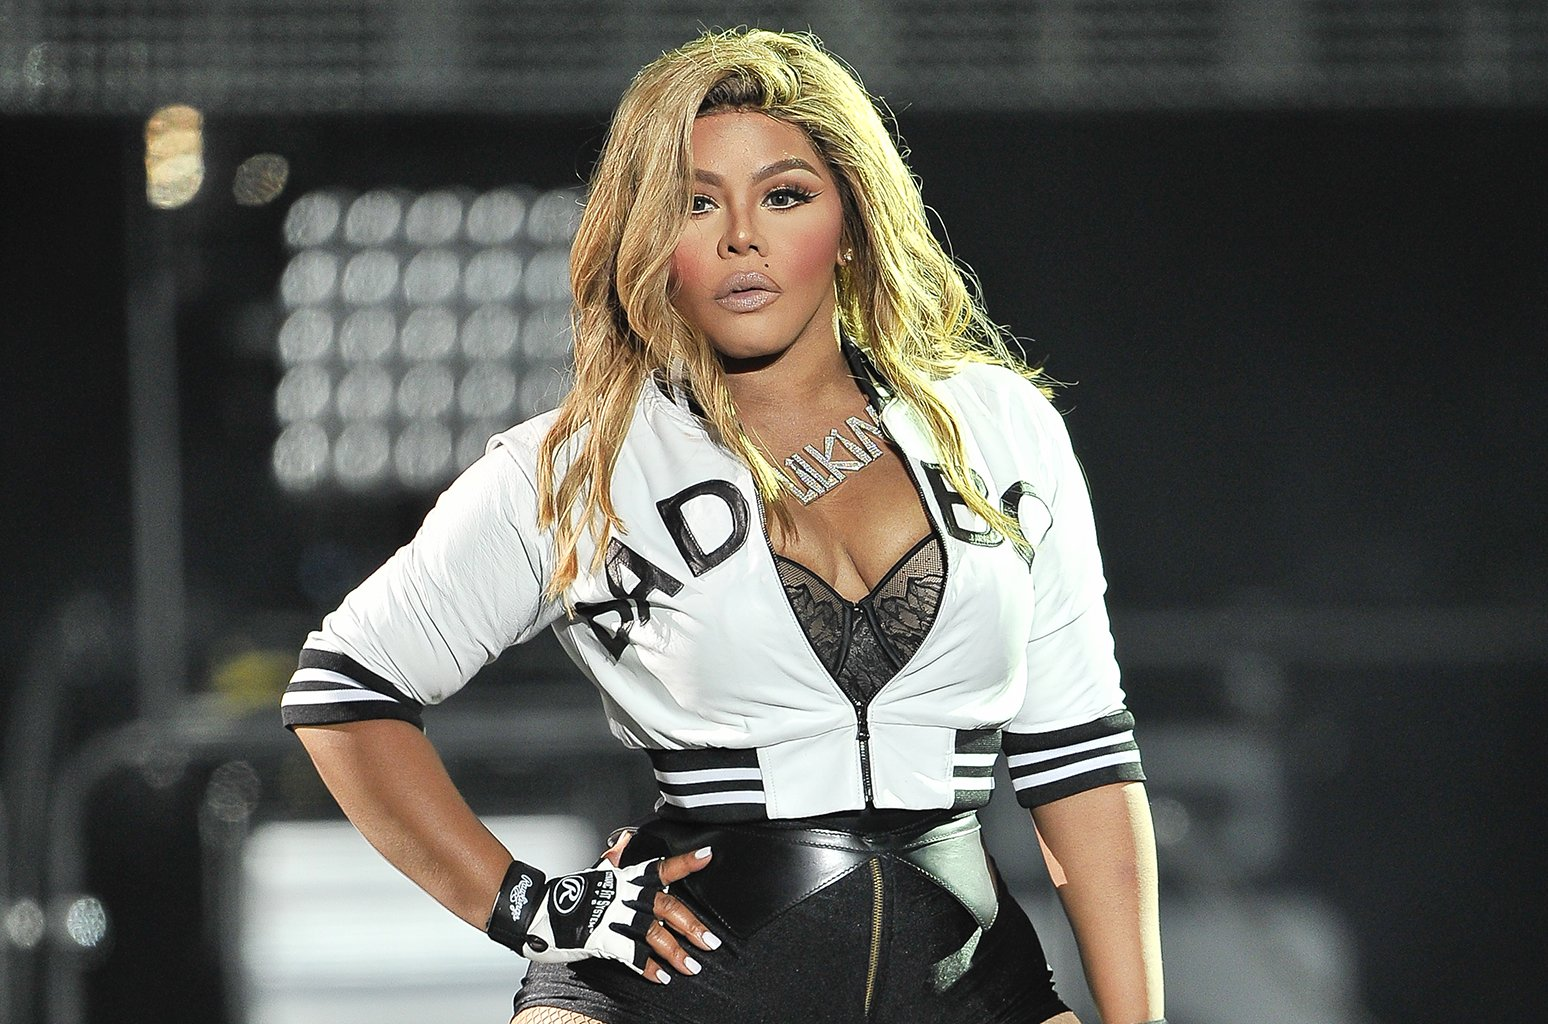 Happy Birthday to the Queen Bee Lil Kim!